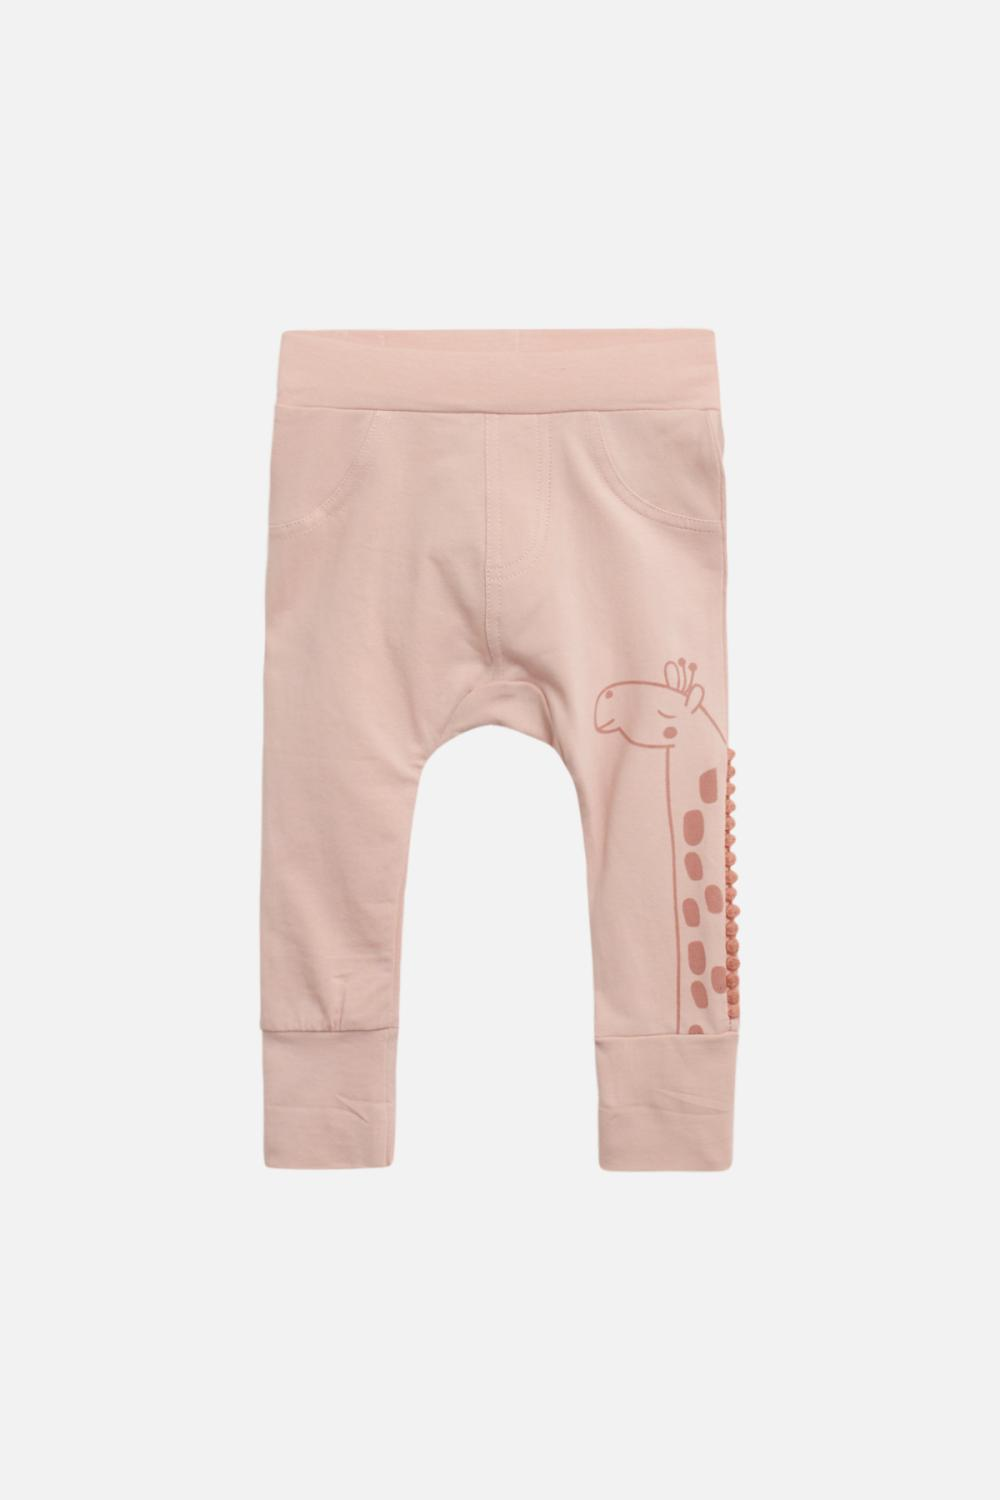 CLAIRE PANTS 29139492 GIRAFF ROSE